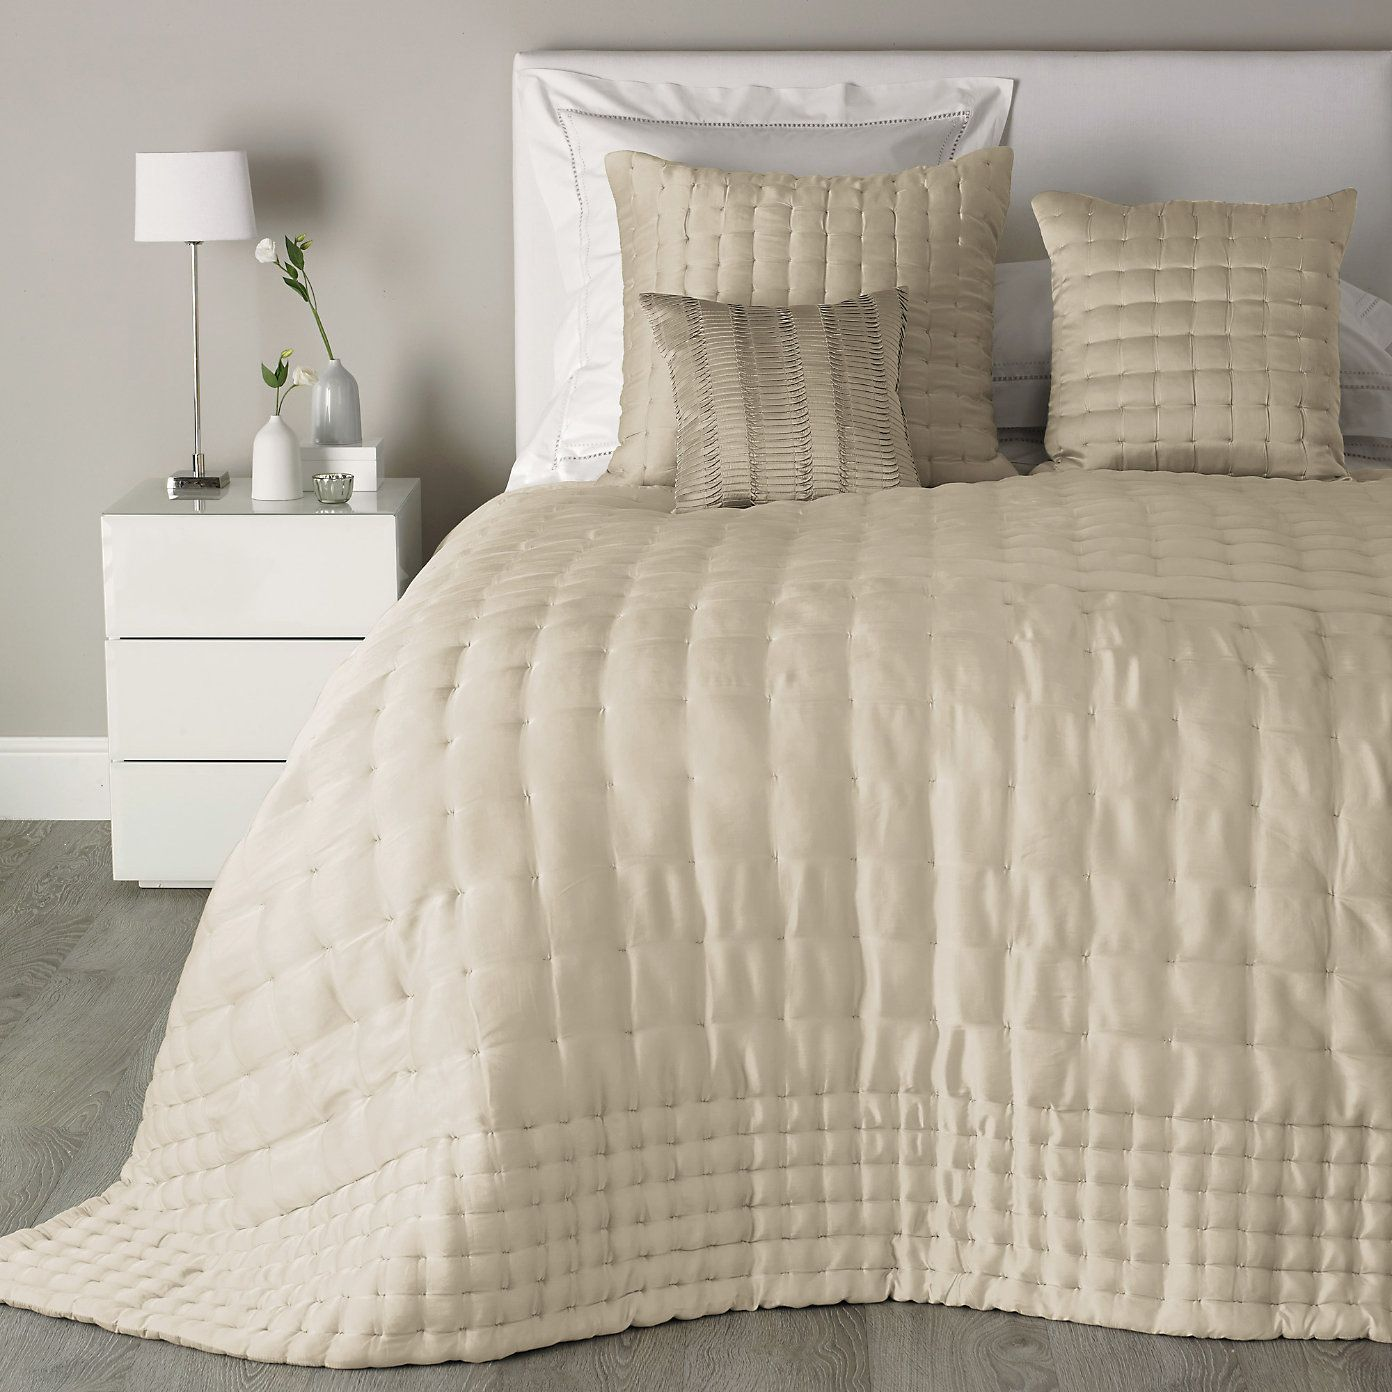 Clarendon Quilt - Natural | The White Company £300 double